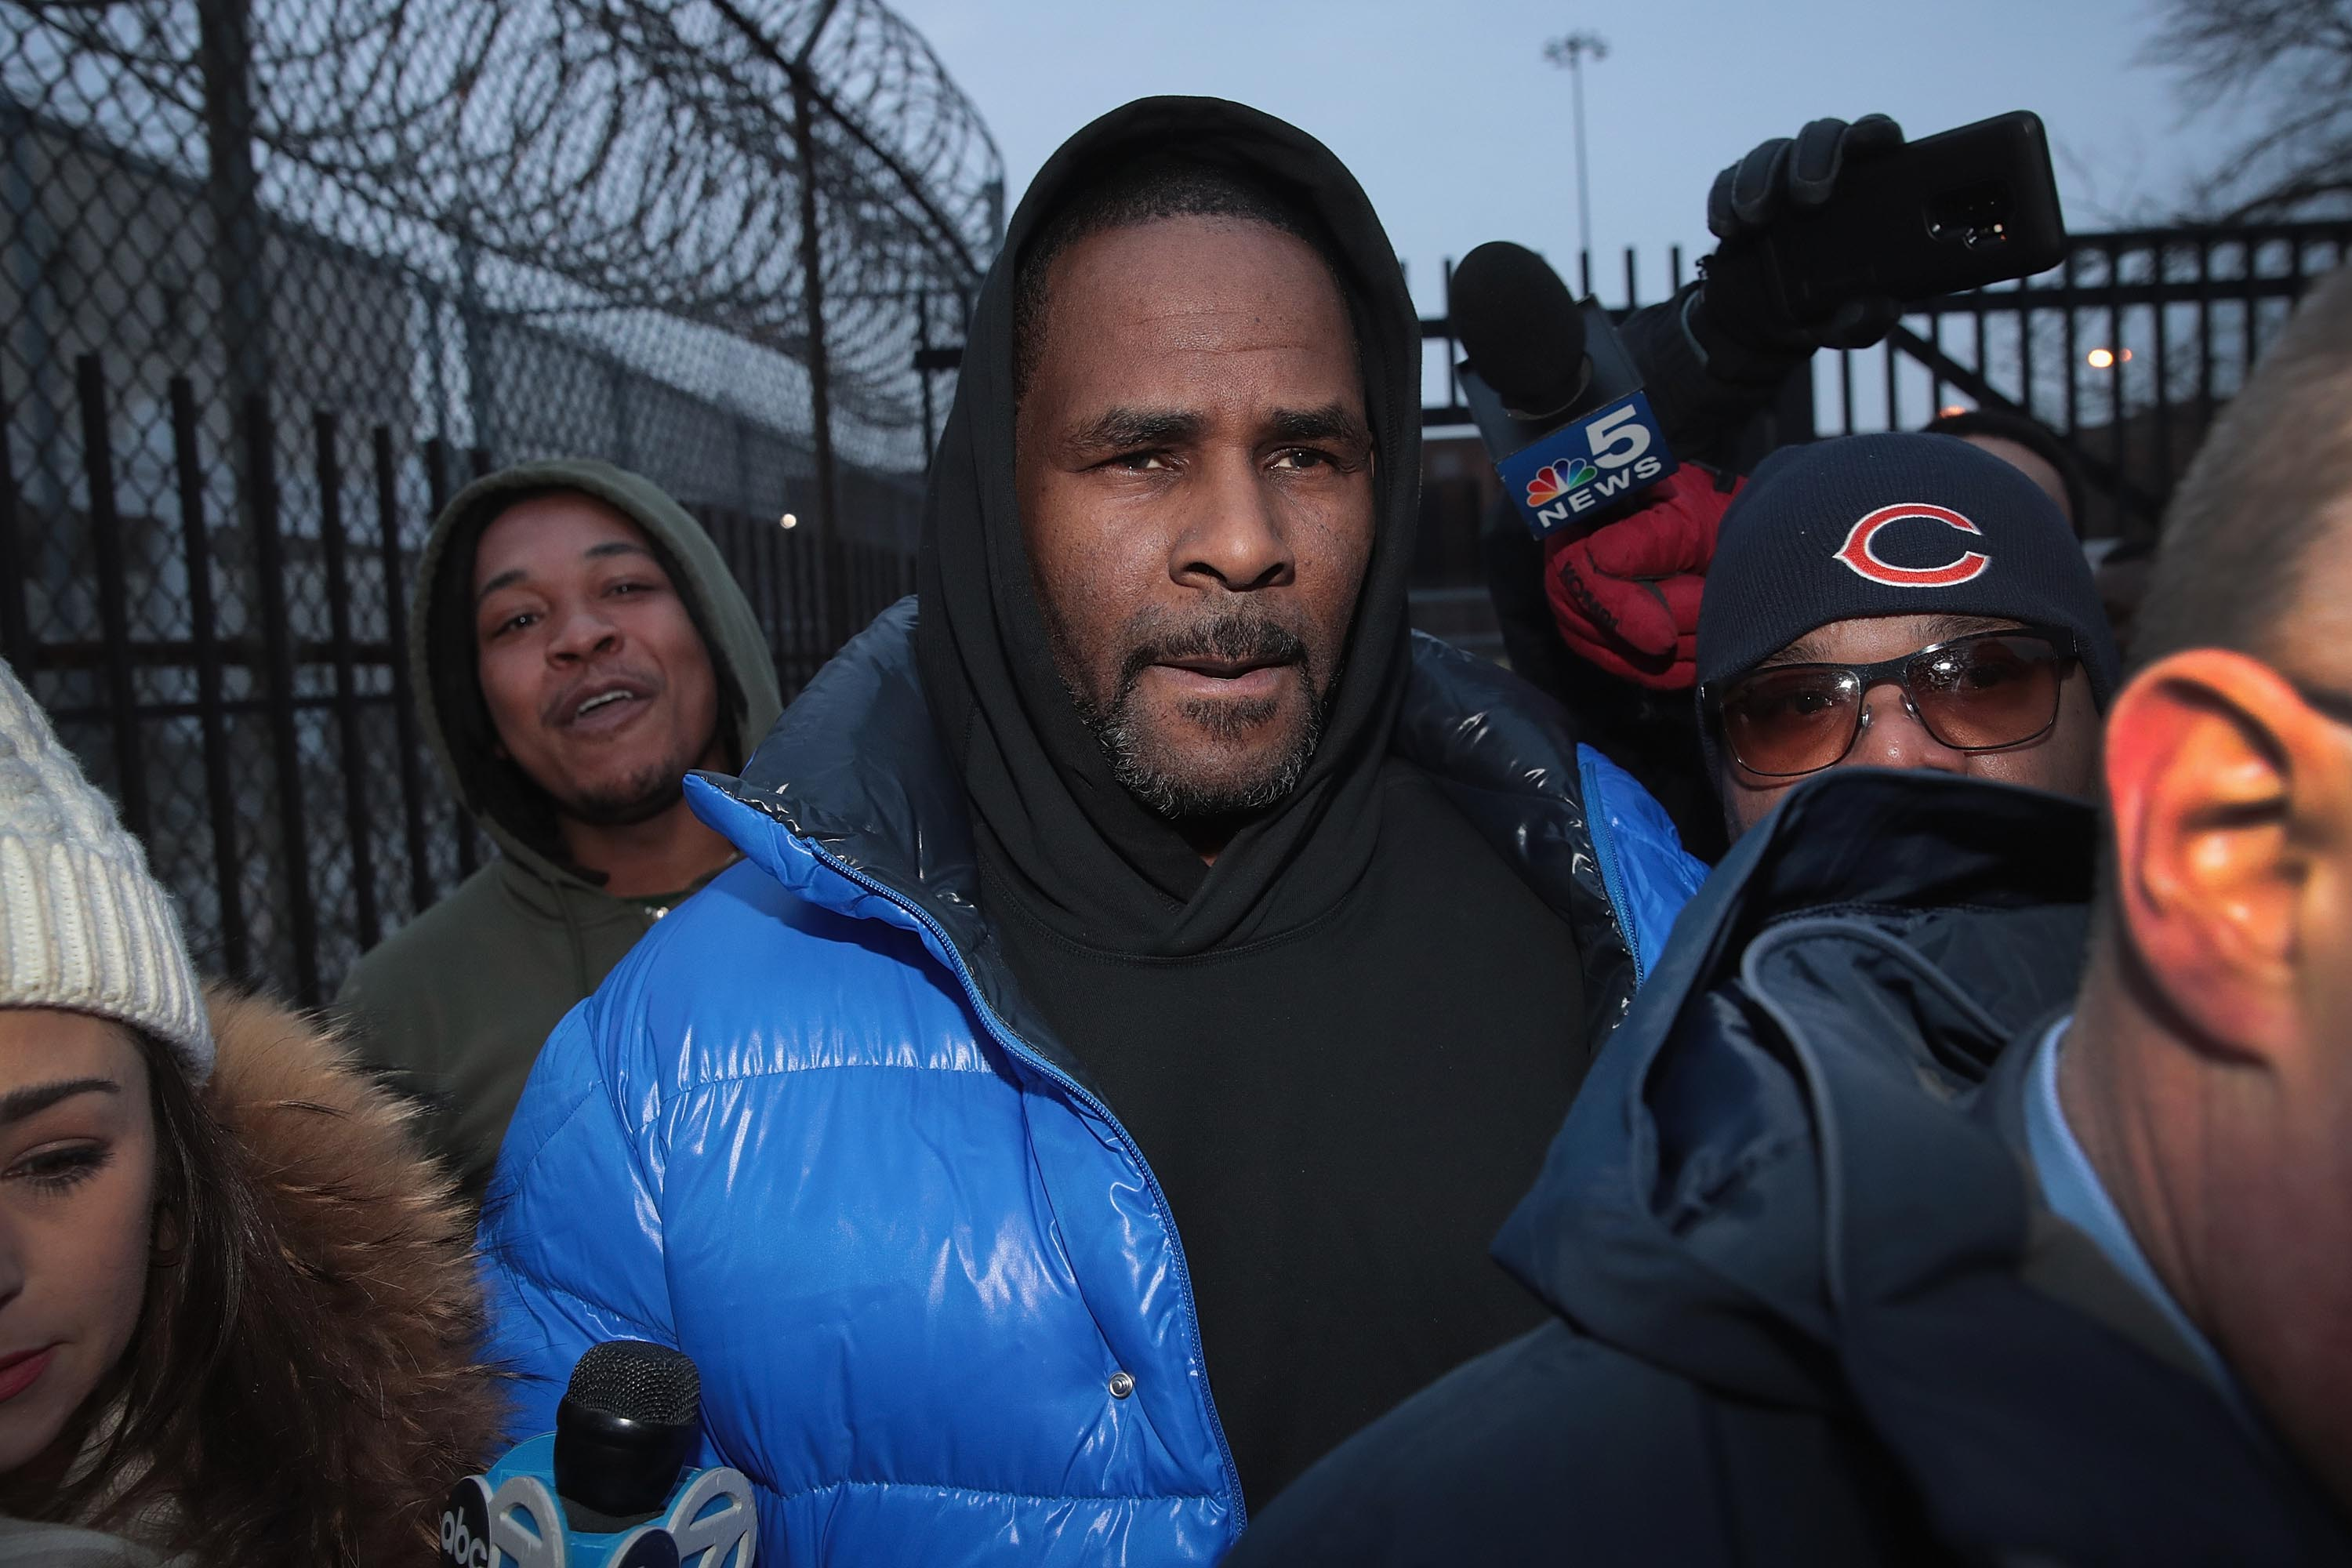 R. Kelly leaving the Cook County jail on Feb. 25, 2019 in Chicago, Illinois. | Photo: Getty Images